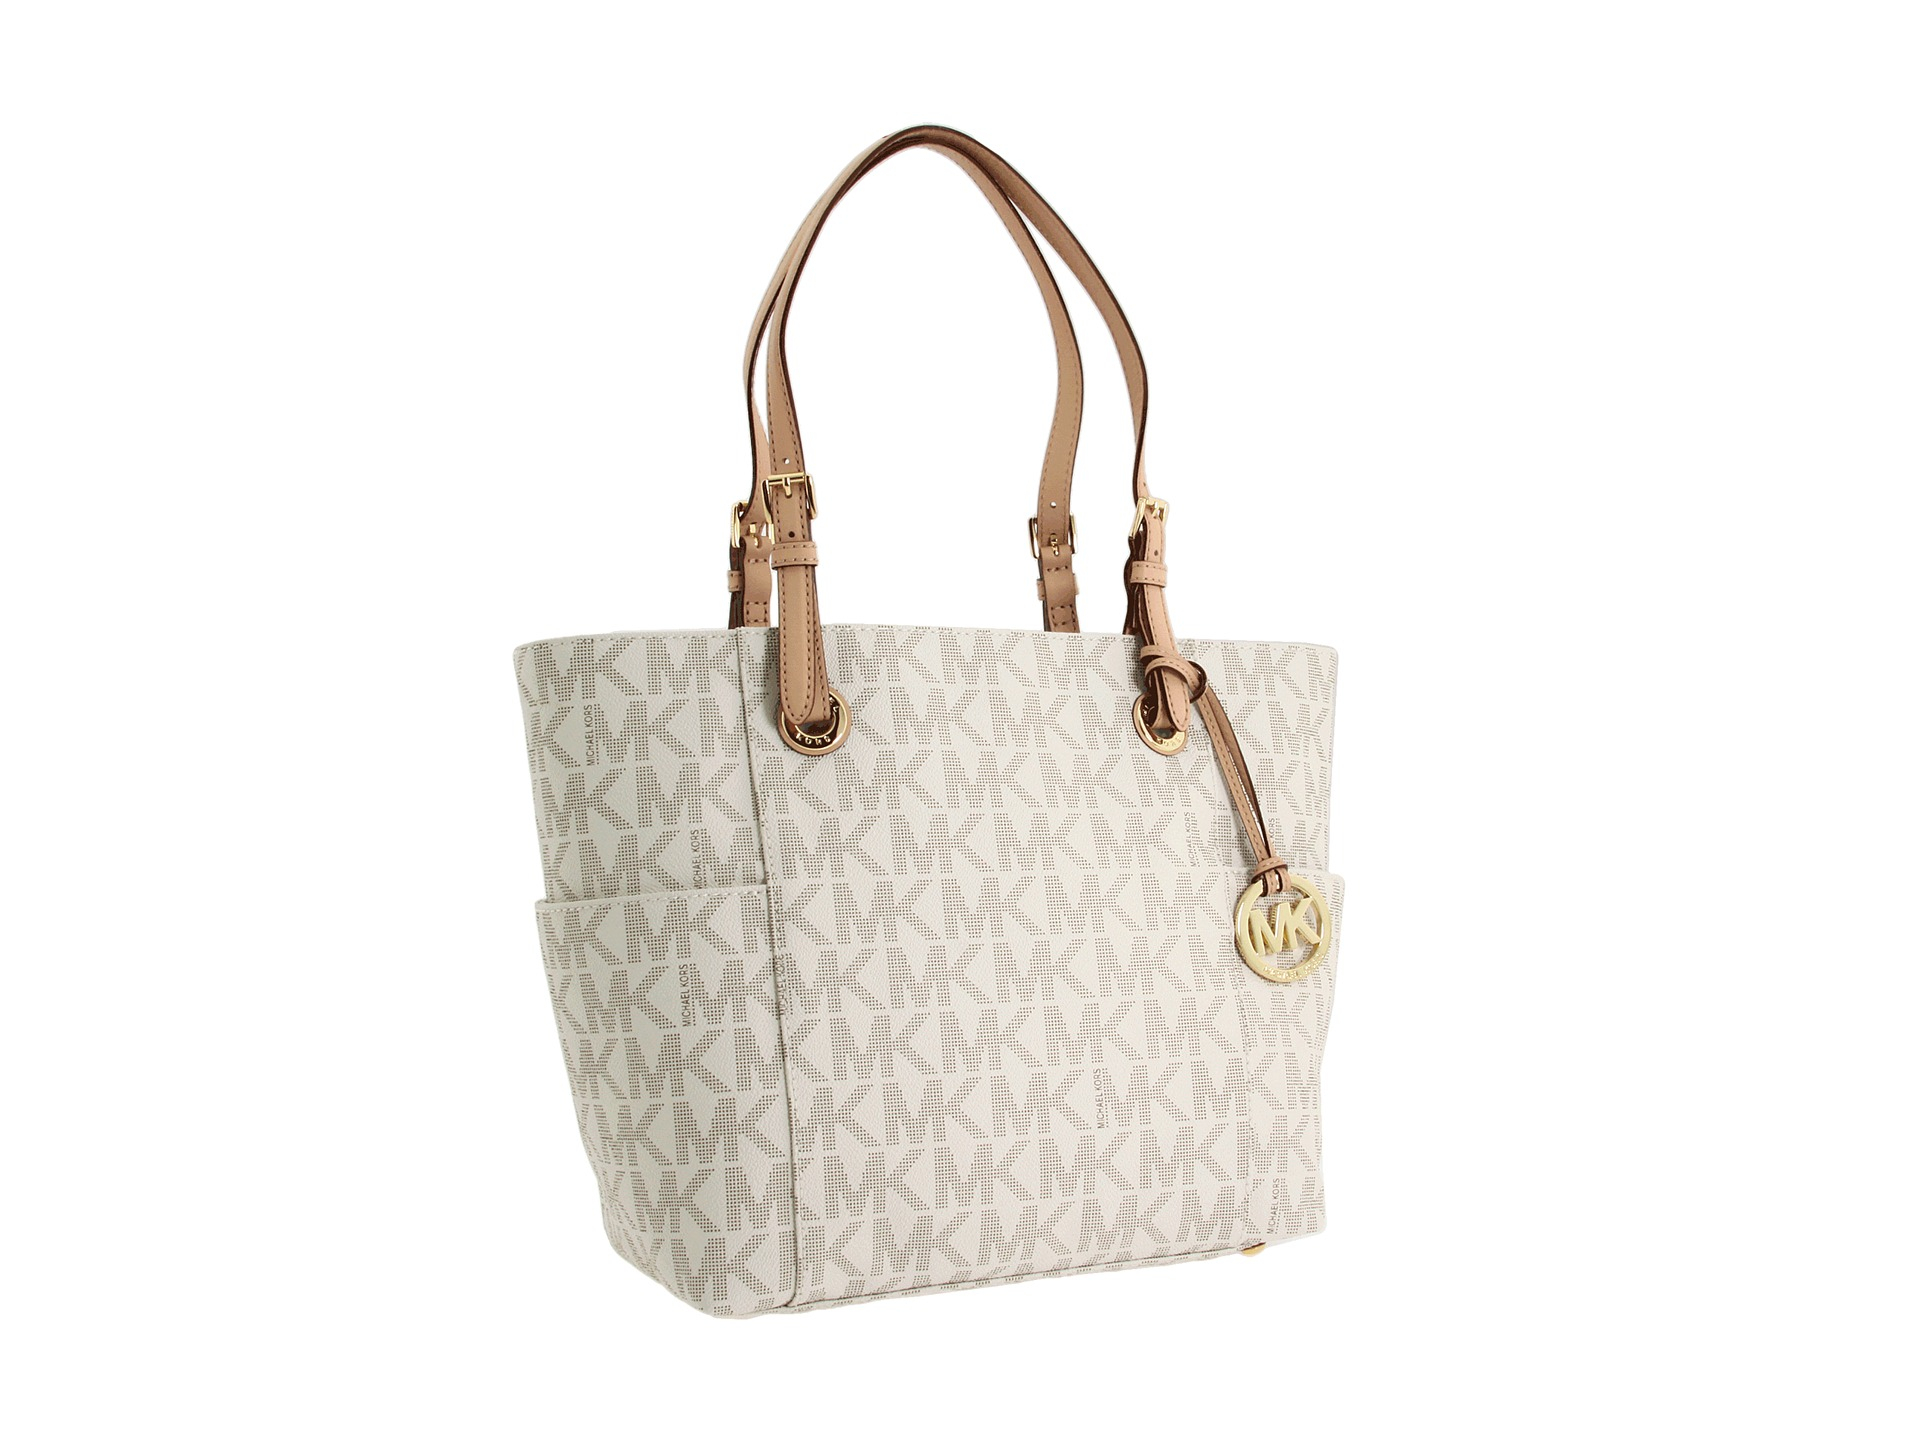 961cd4a028b6 Lyst - MICHAEL Michael Kors Mk Logo East west Signature Tote in White